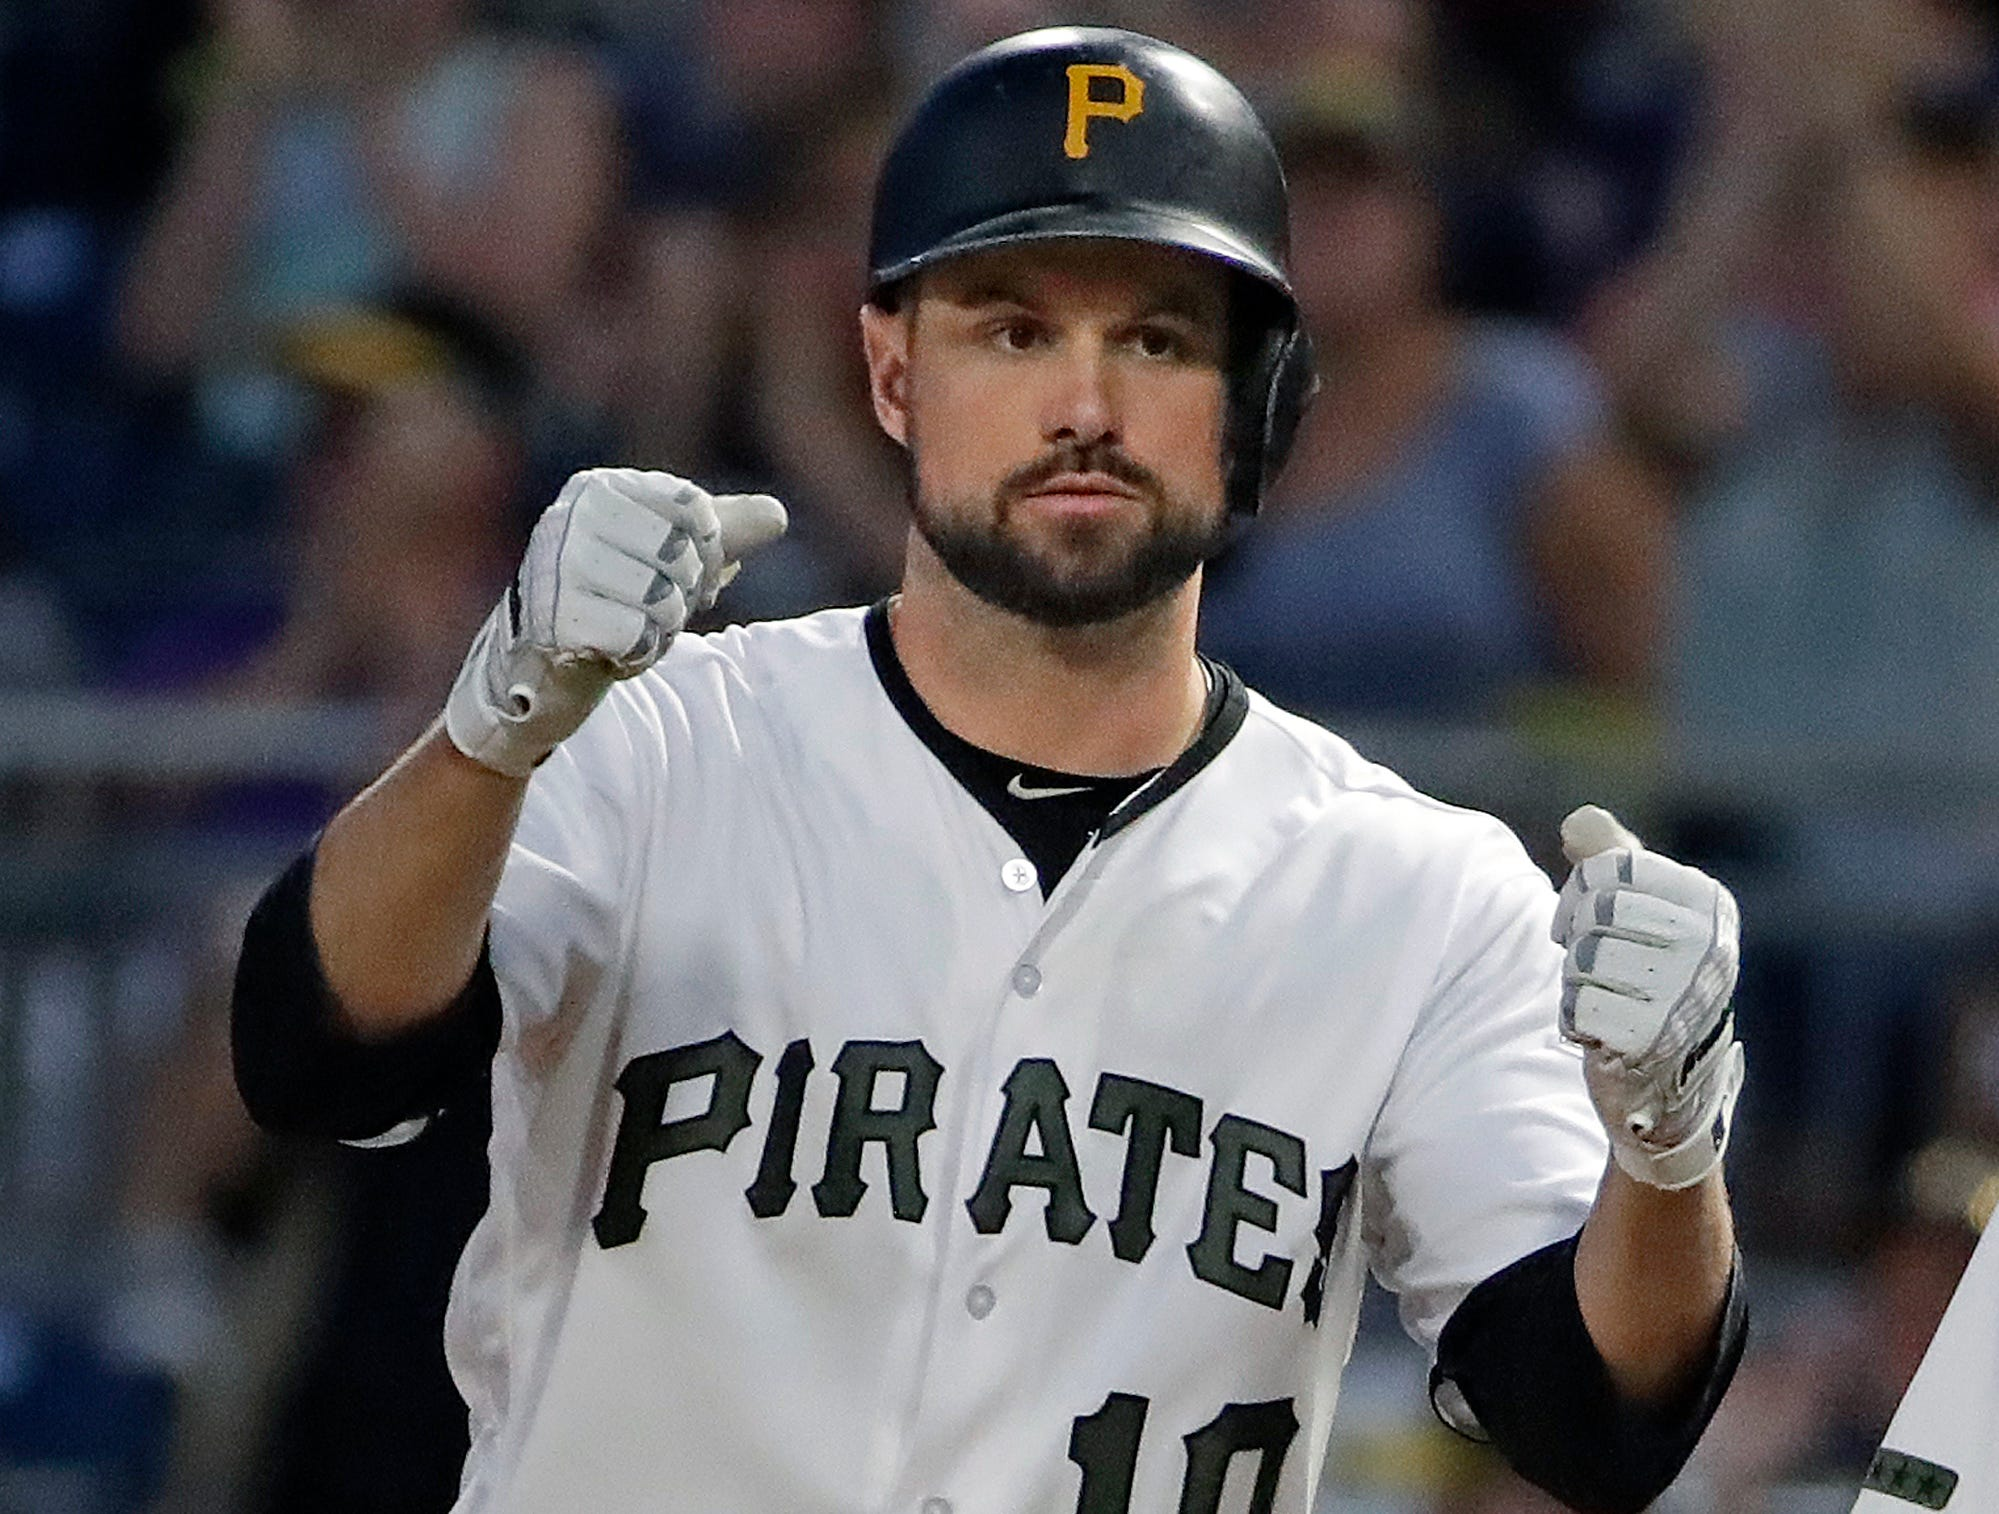 Pittsburgh Pirates' Jordy Mercer celebrates after driving in two runs with a single off Milwaukee Brewers relief pitcher Adrian Houser in the sixth inning of a game in Pittsburgh, Thursday, July 12, 2018.